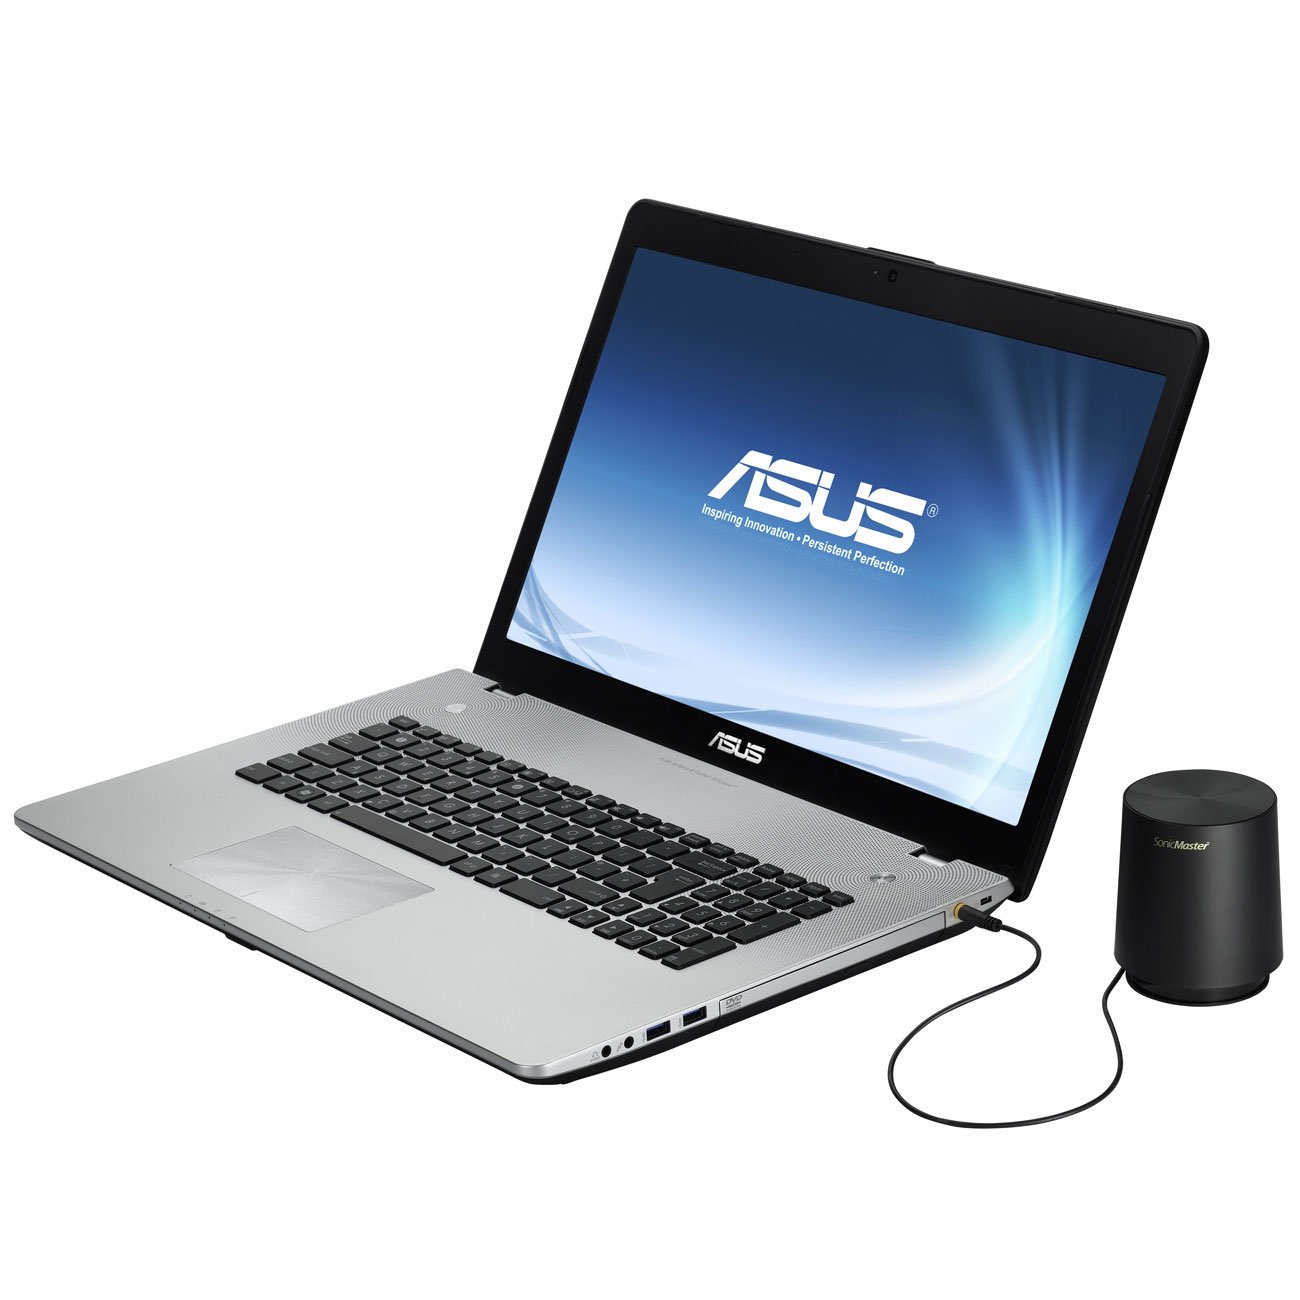 asus n76vm v2g t5107v pc portable asus sur ldlc. Black Bedroom Furniture Sets. Home Design Ideas